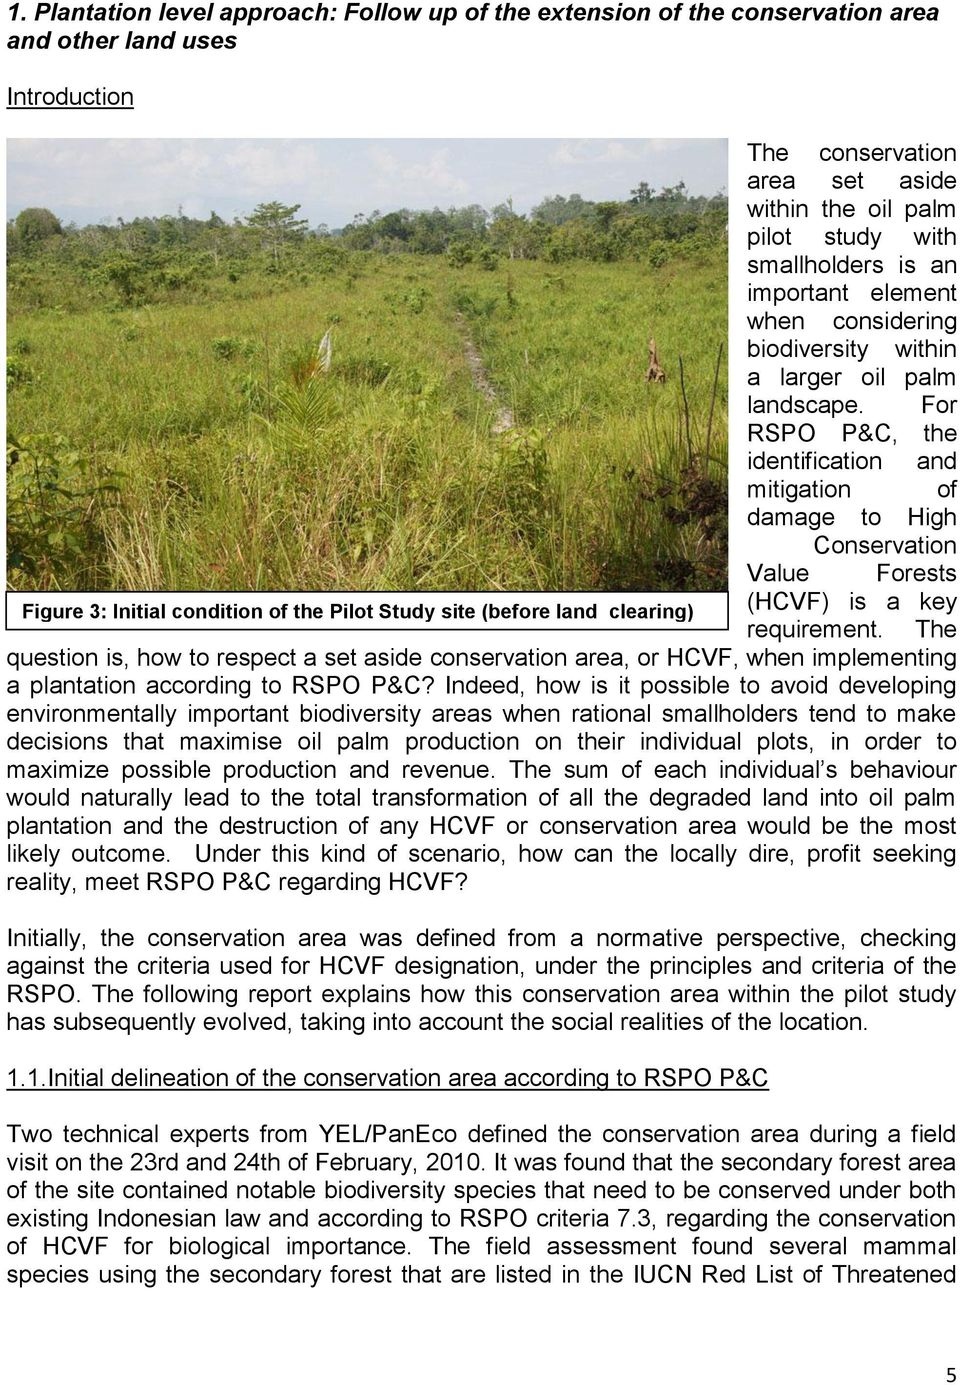 For RSPO P&C, the identification and mitigation of damage to High Conservation Value Forests Figure 3: Initial condition of the Pilot Study site (before land clearing) (HCVF) is a key requirement.